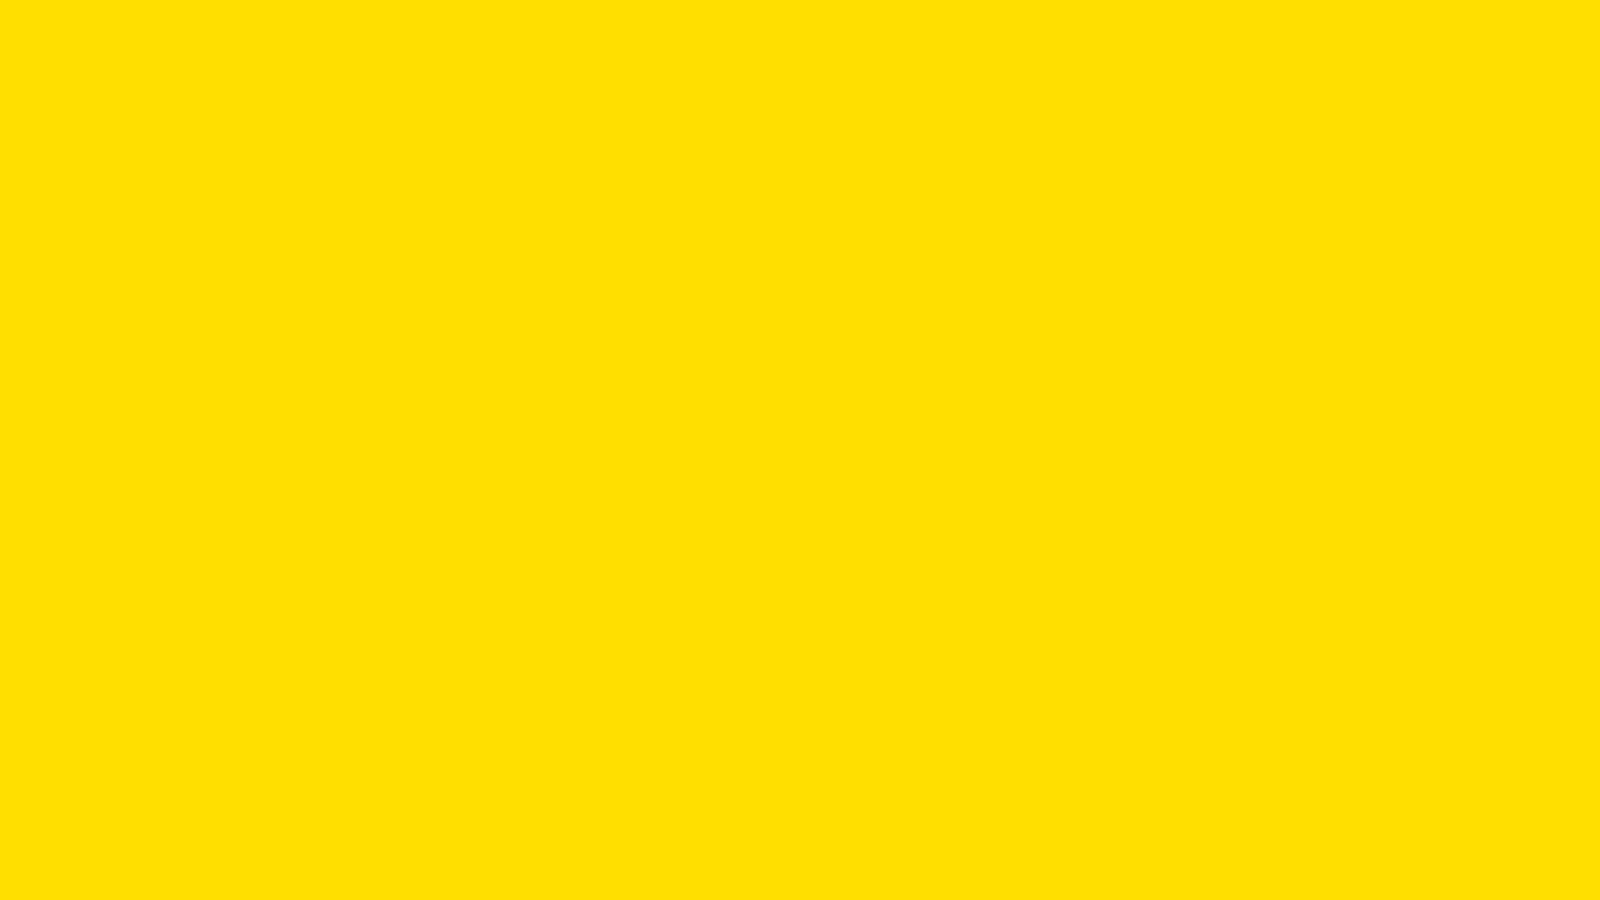 1600x900 Golden Yellow Solid Color Background